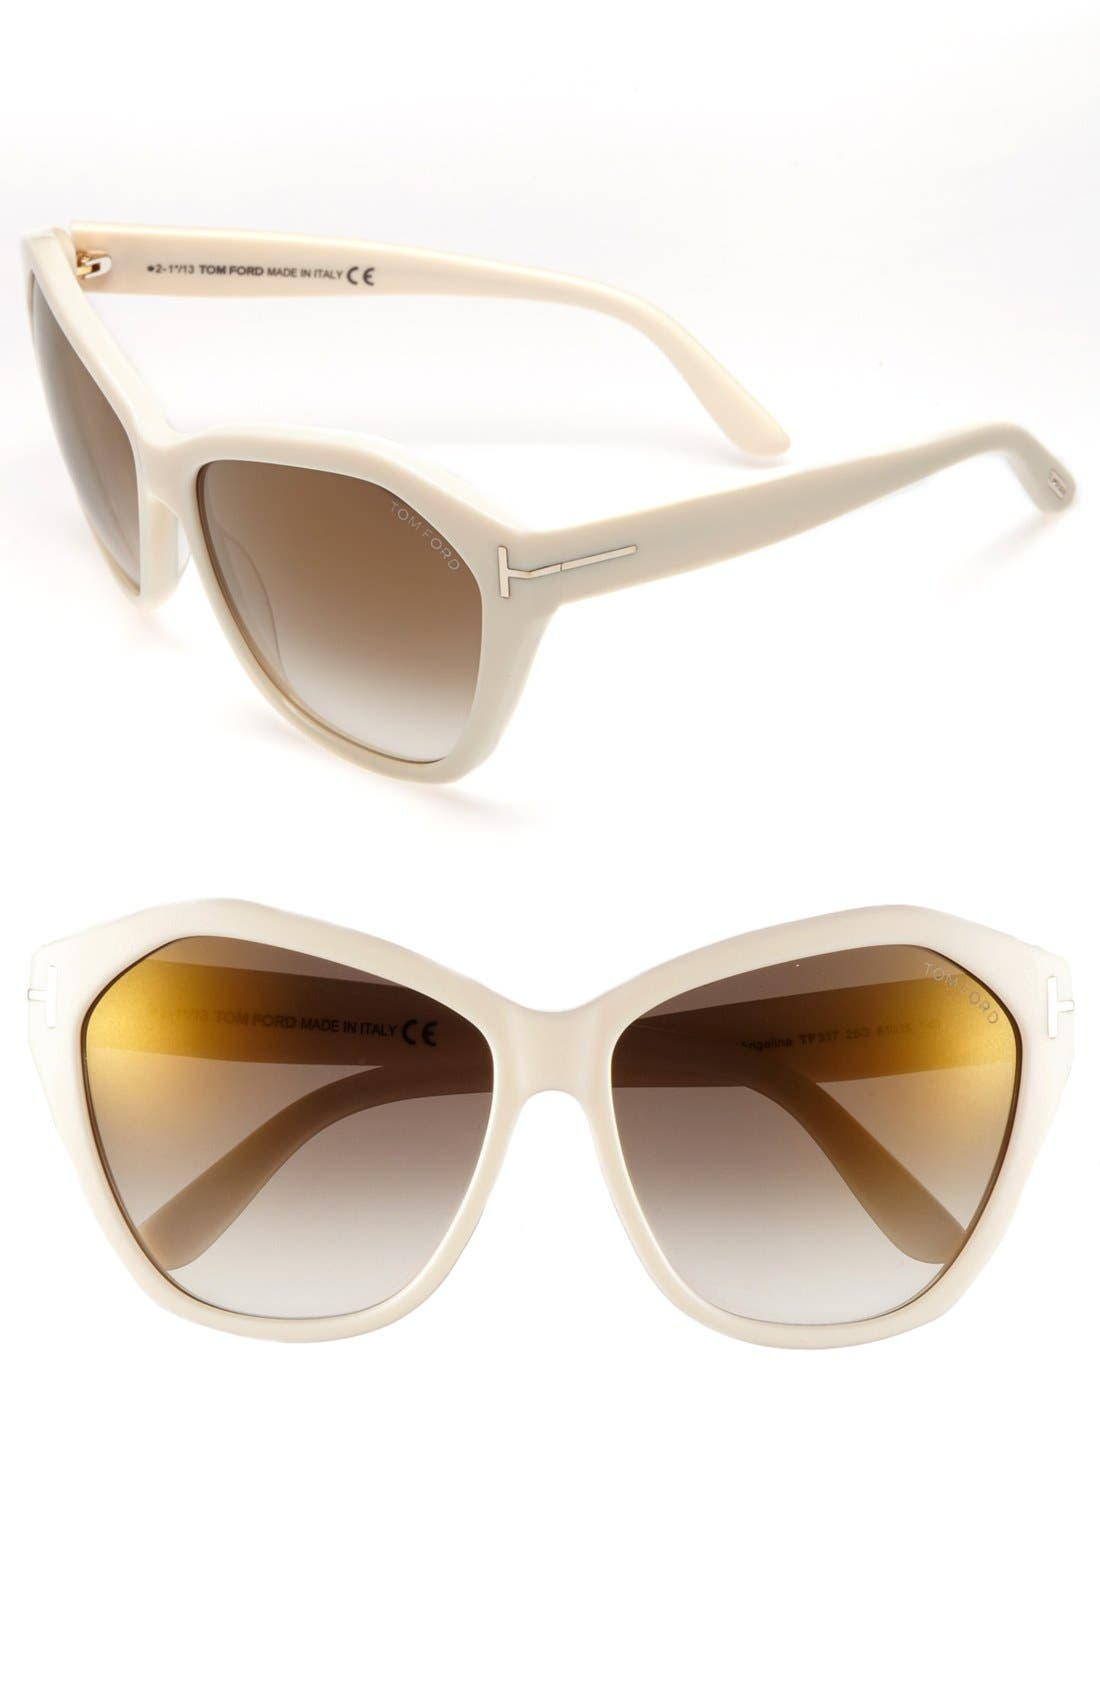 Alternate Image 1 Selected - Tom Ford 'Casandra' 61mm Sunglasses